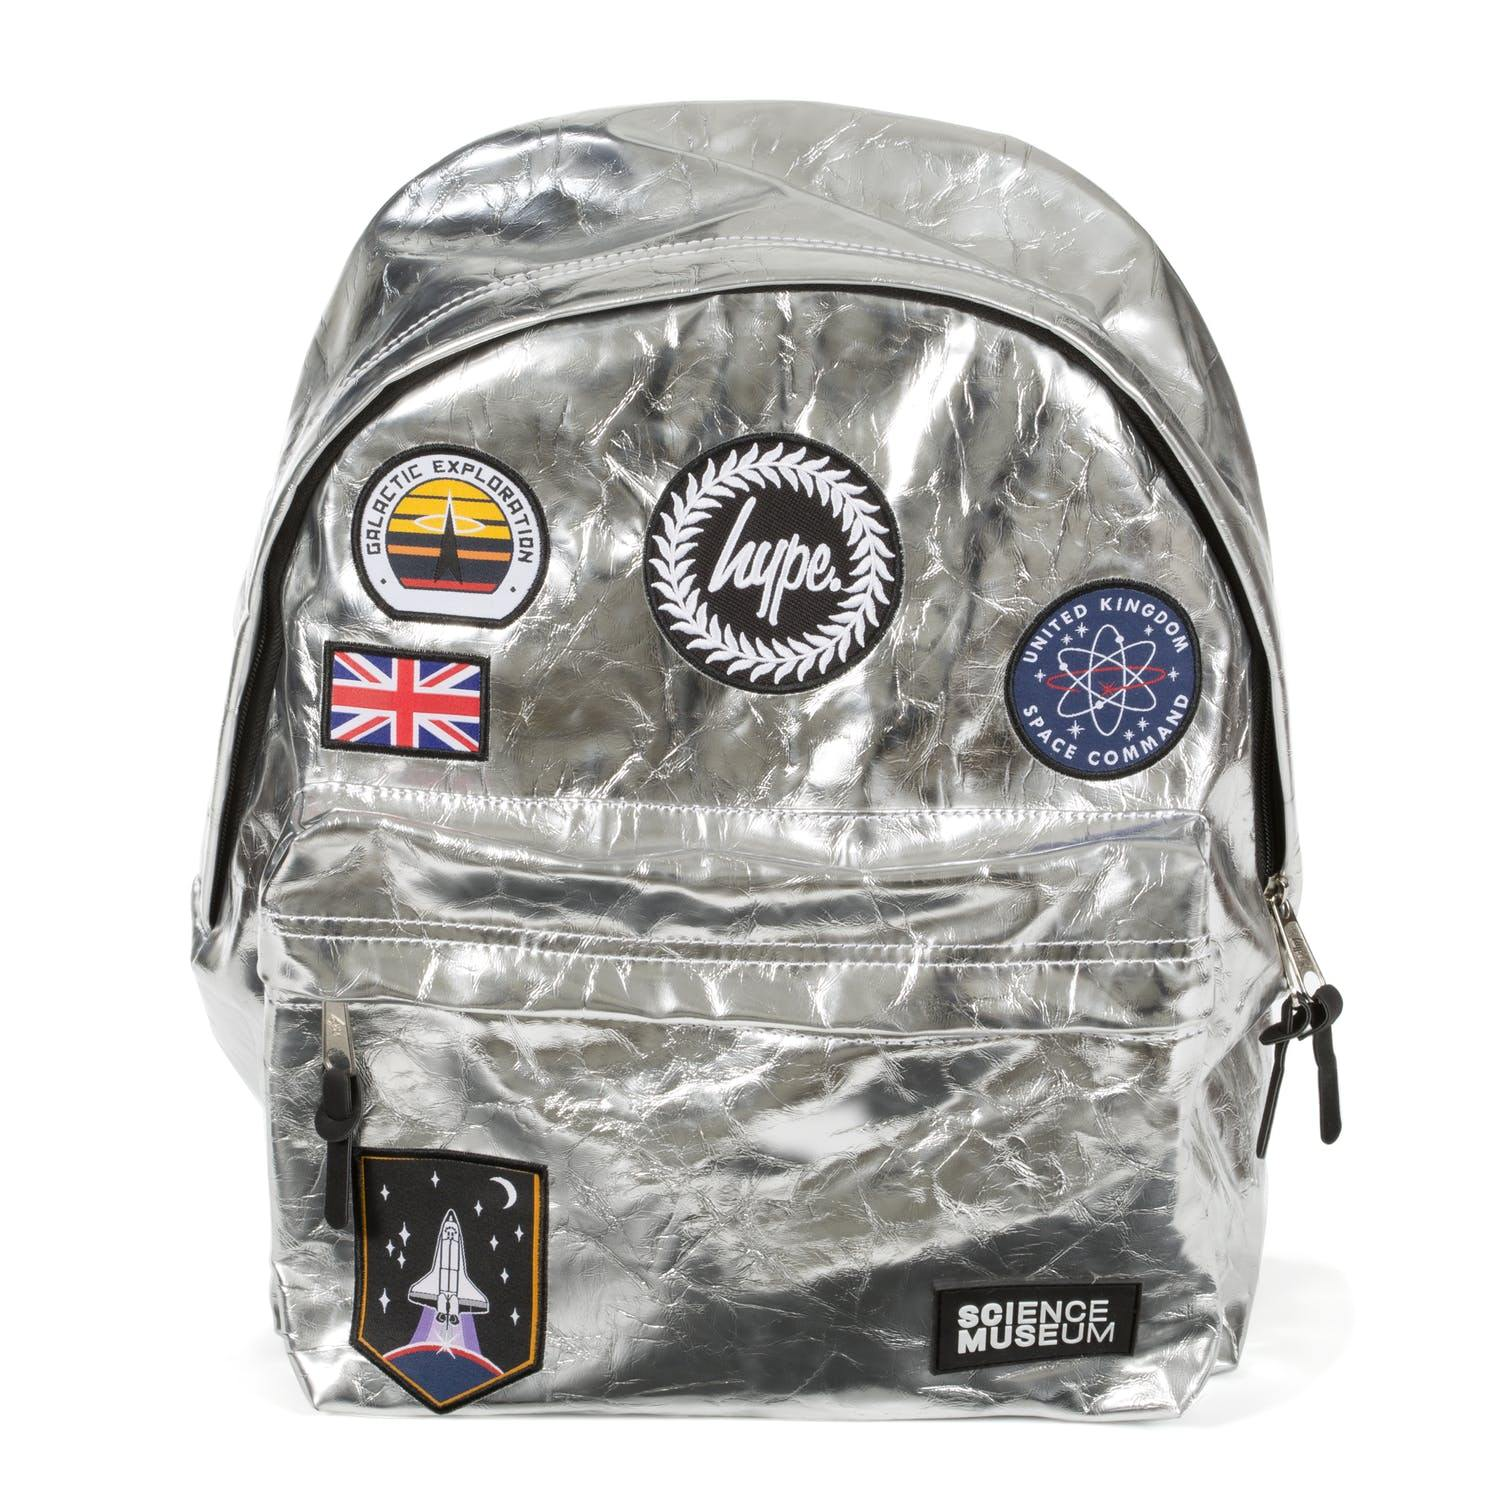 Hype X Science Museum Astronaut Backpack